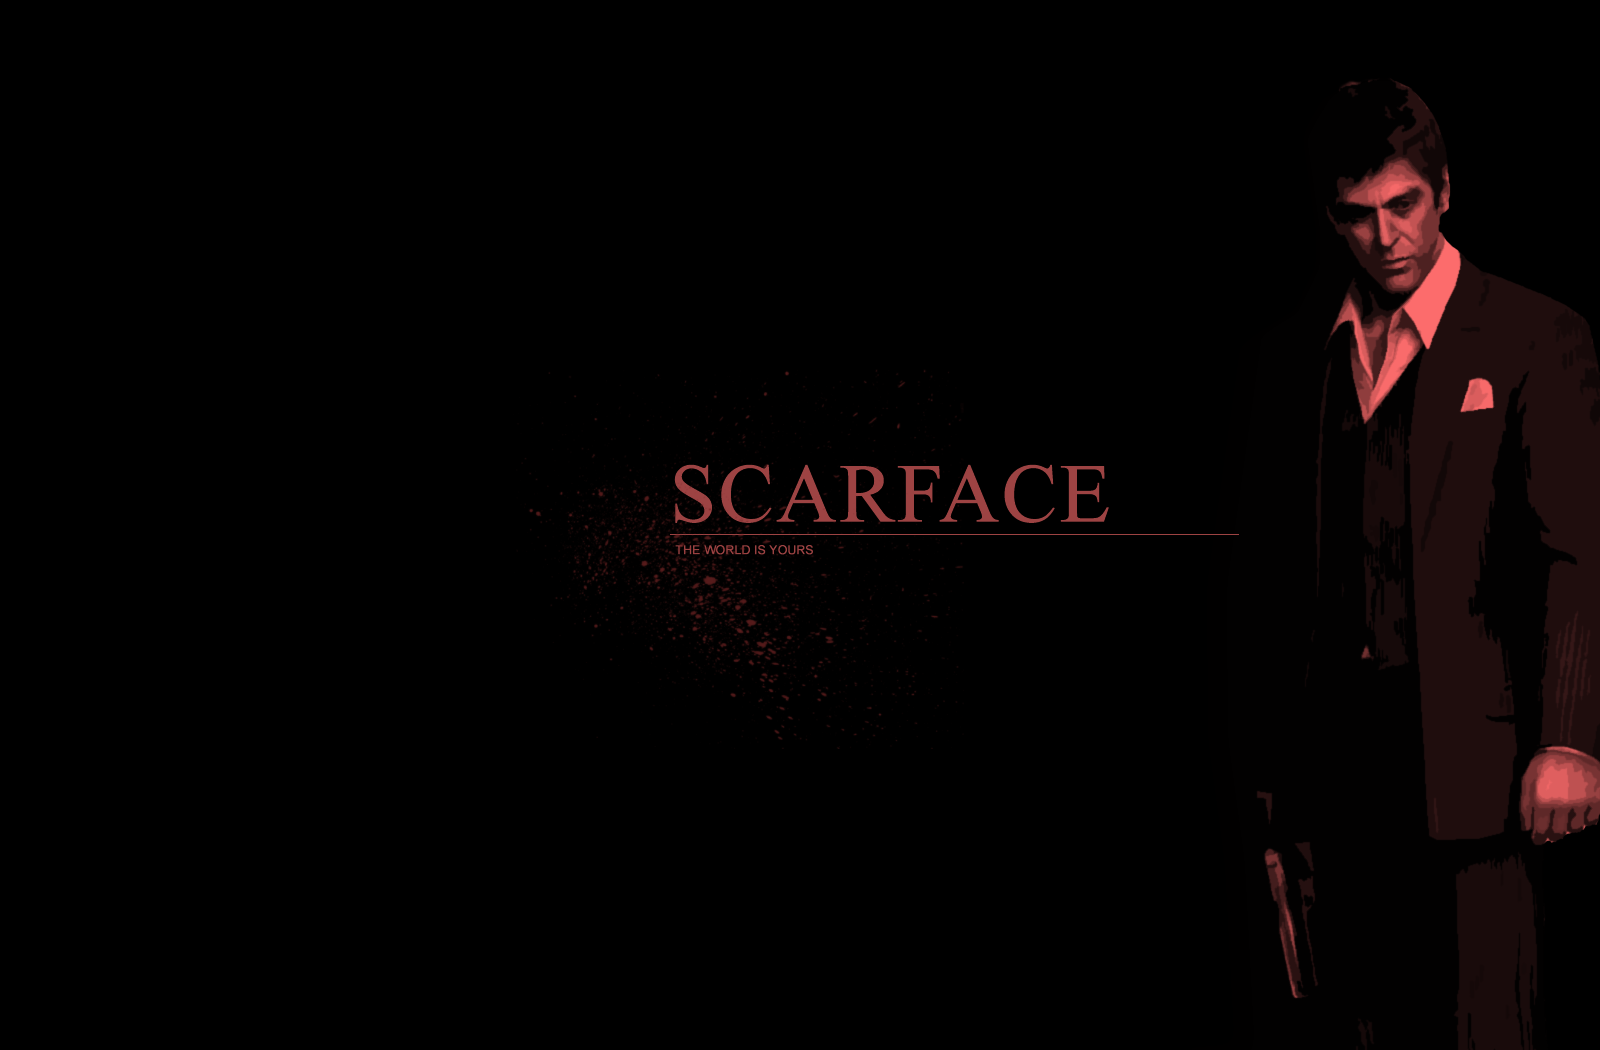 Scarface Wallpapers HD - Wallpaper Cave | Images Wallpapers | Pinterest